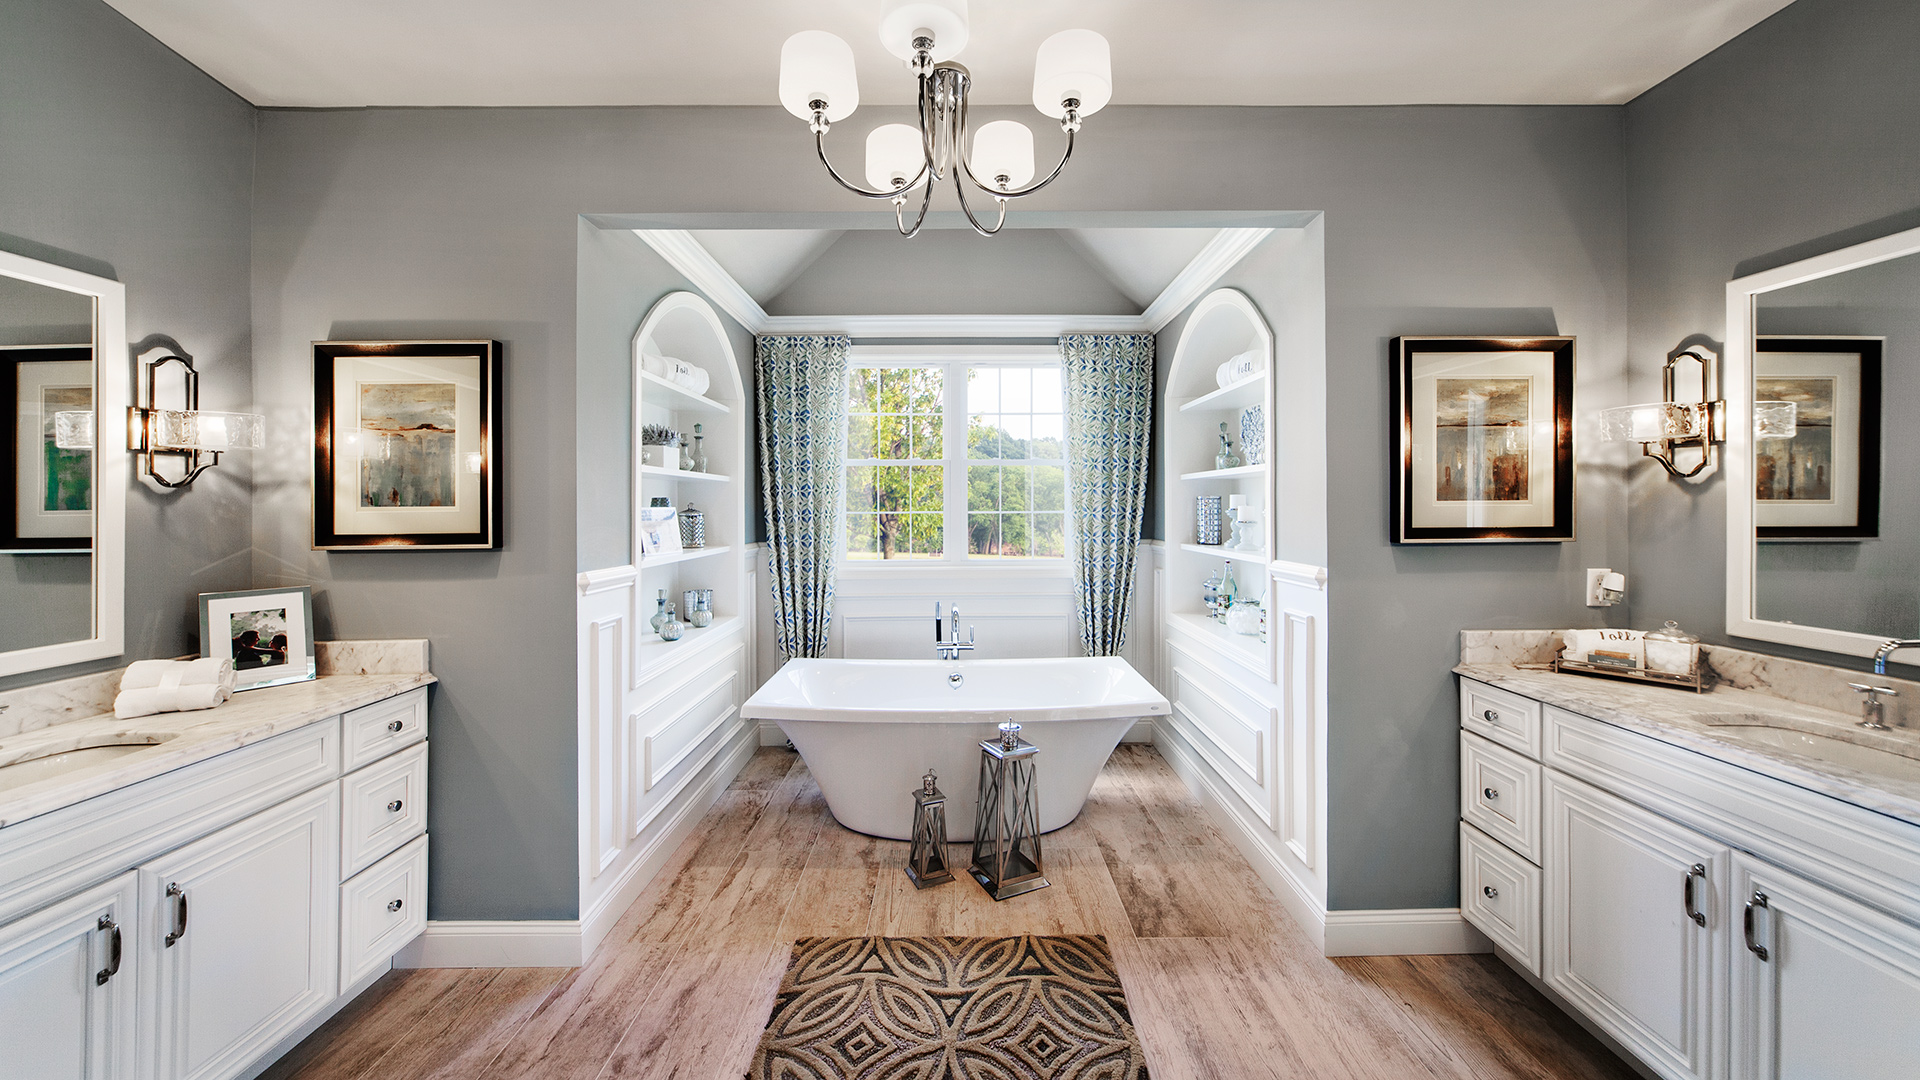 stansbury glastonbury estates glastonbury ct - Bathroom Inspiration